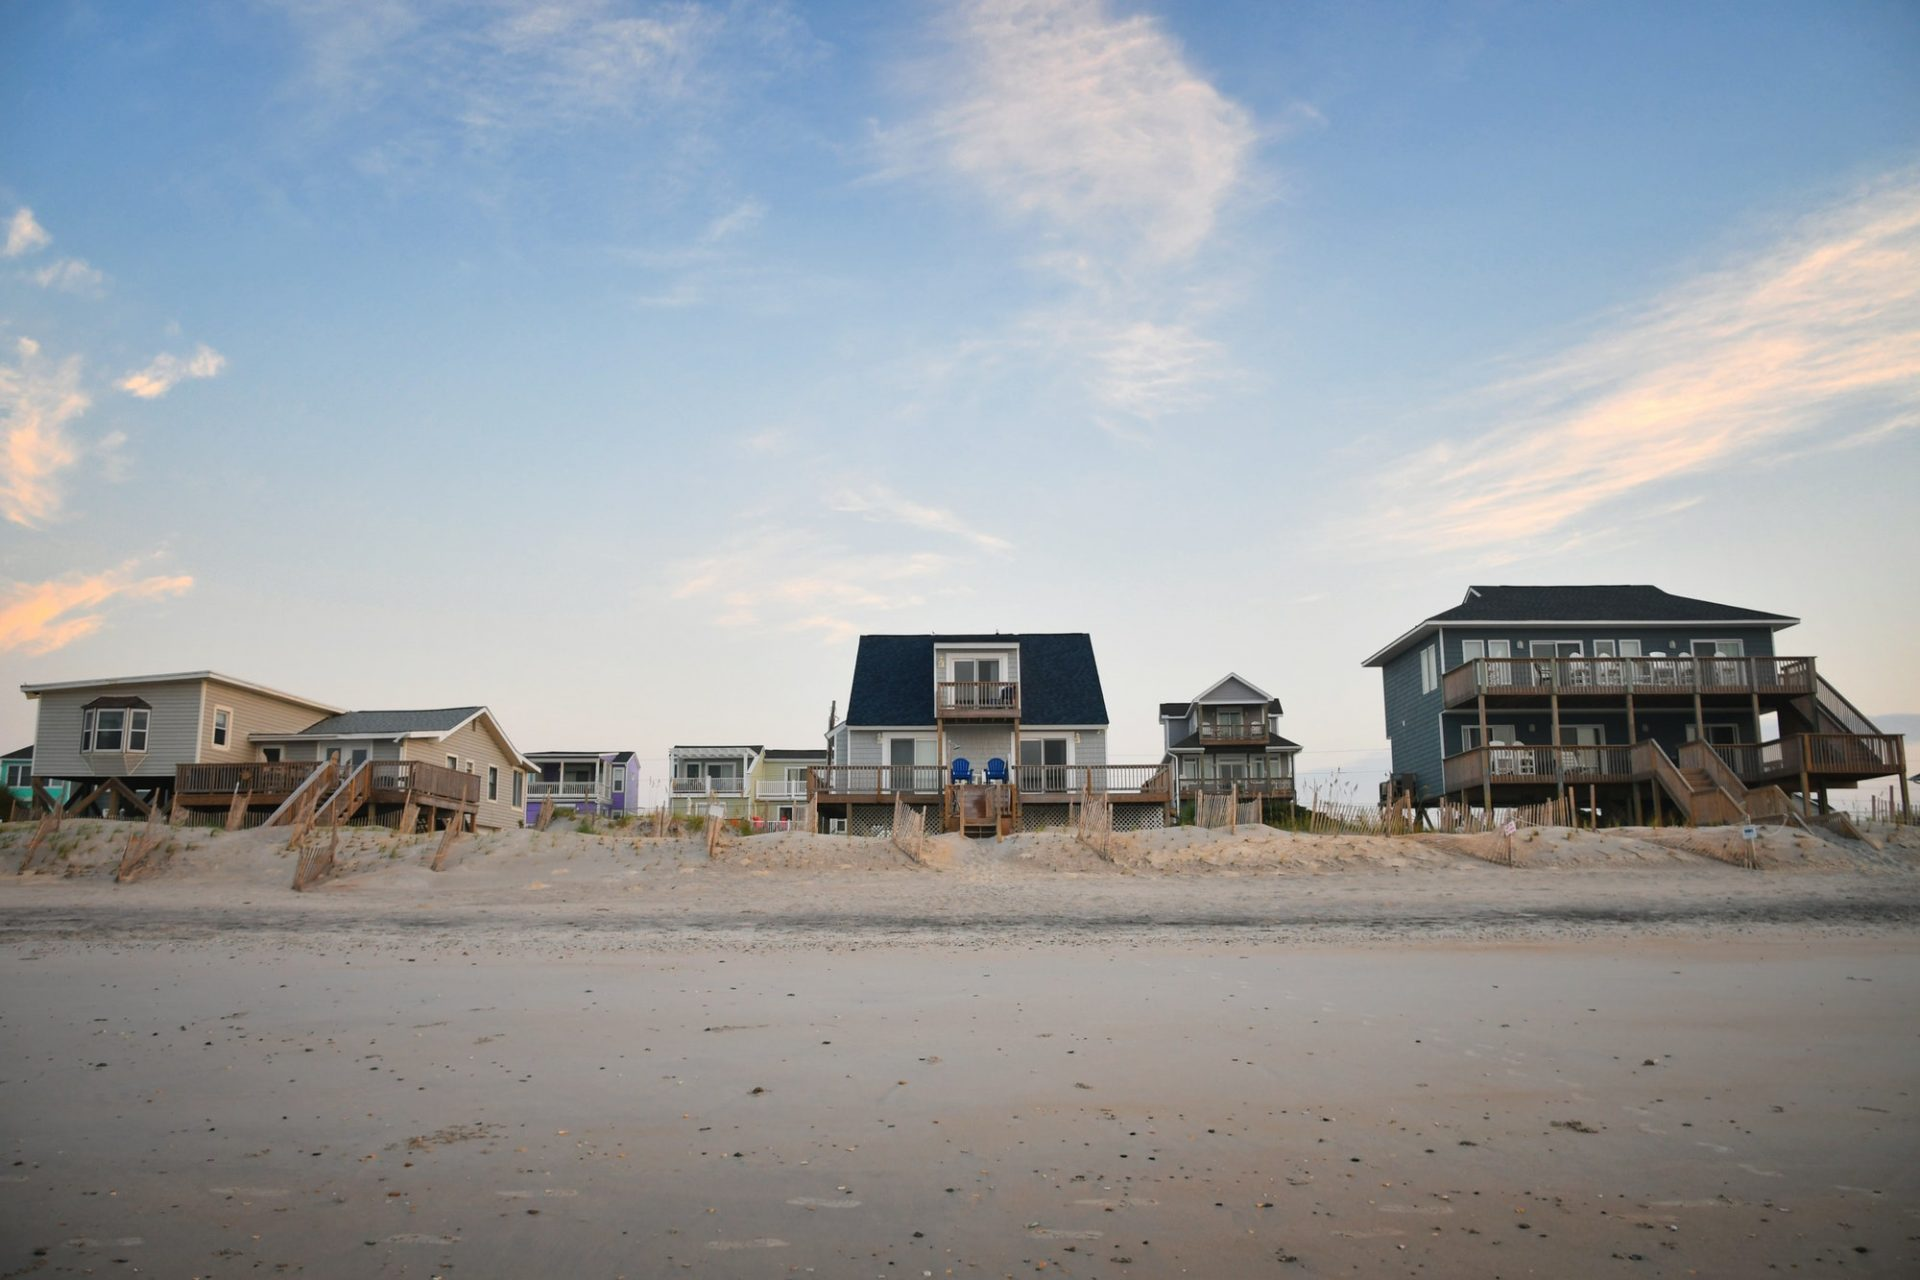 Row of various sized beach cottage vacation homes to rent or buy on the ocean